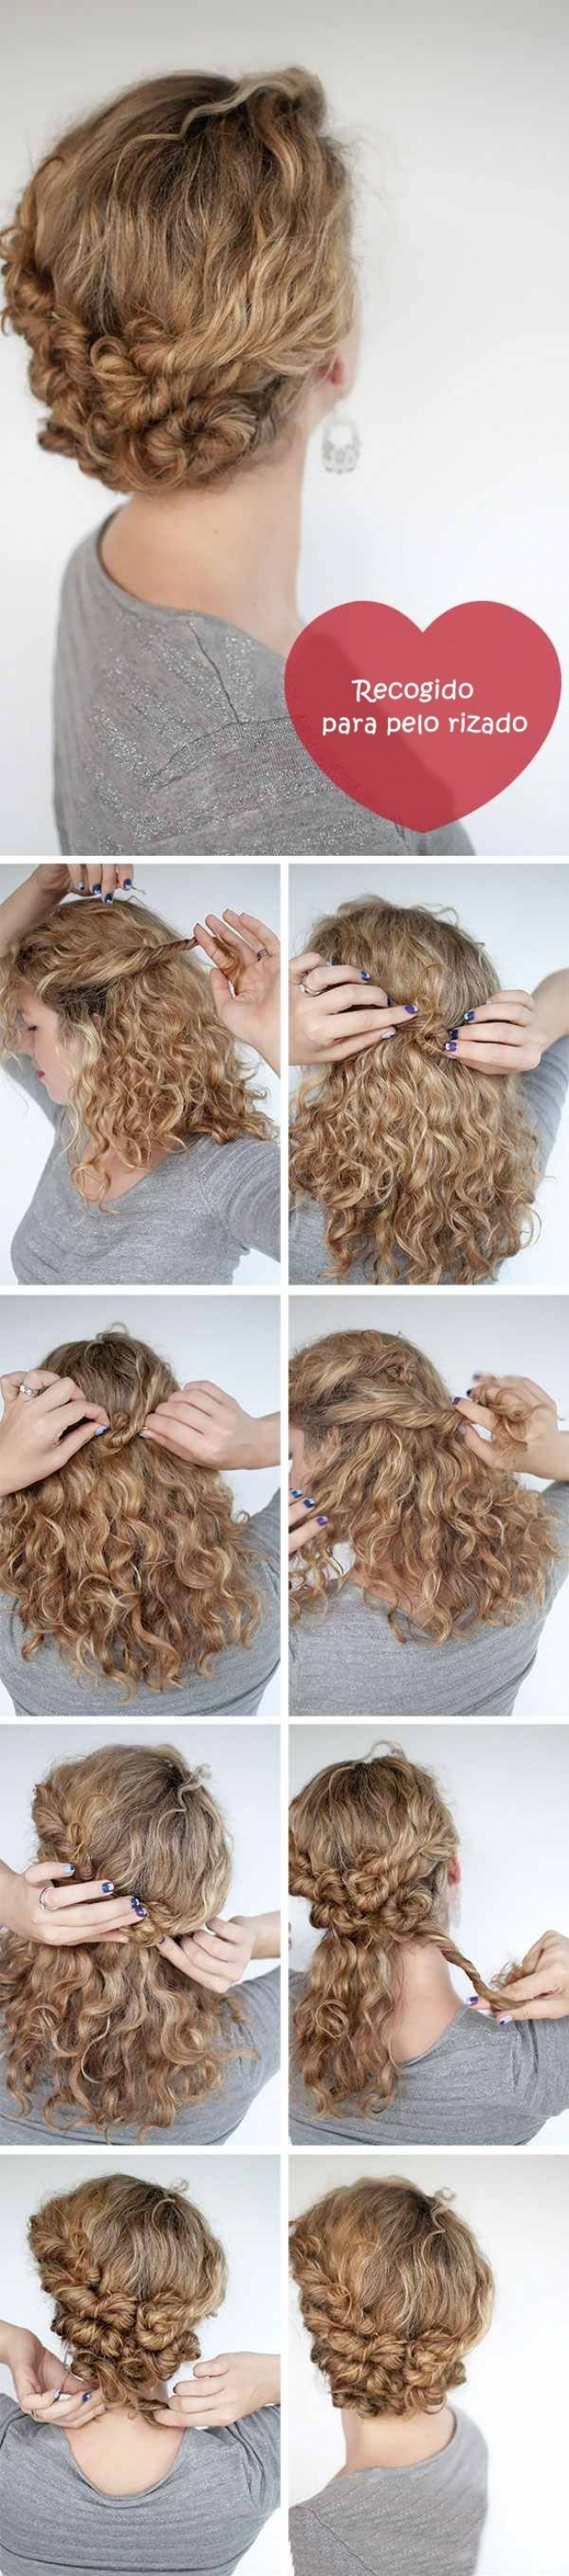 hairstyles-for-curly-and-short-hair